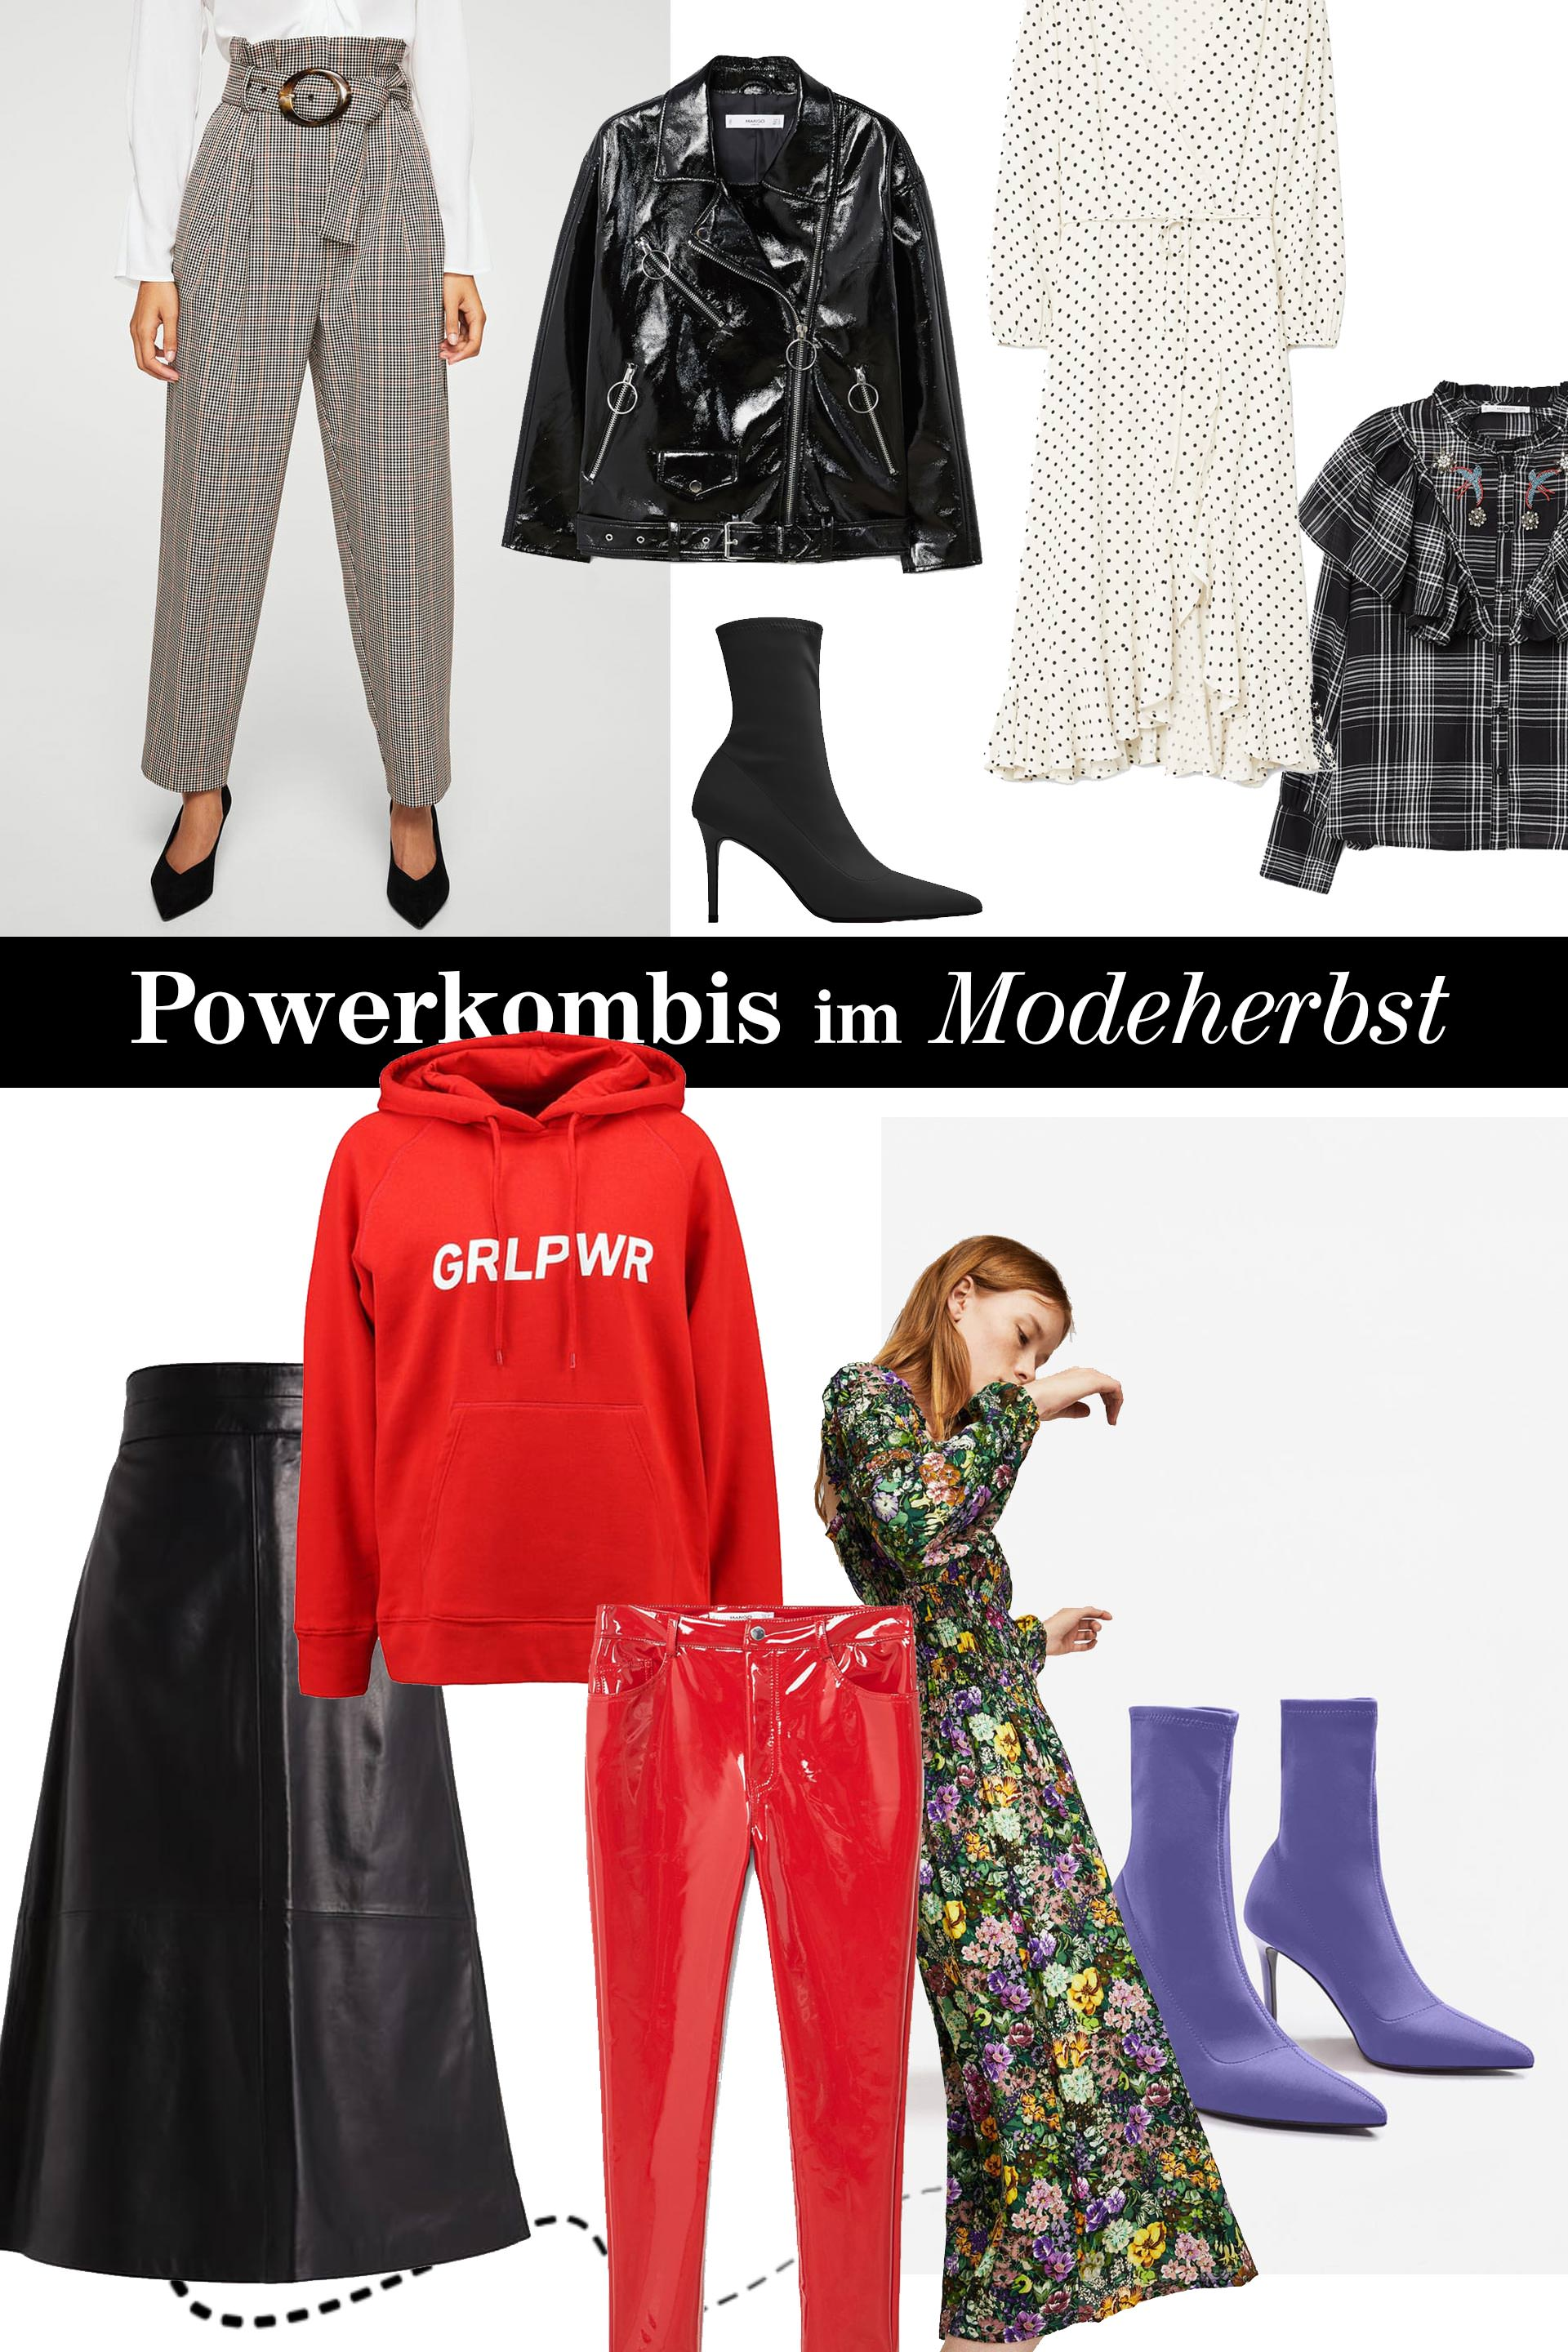 Fashion Modetrends 2017 für den Herbst, Sock Boots, Herbstkleider, Glencheck Karo Blazer, Lack, Vinyl, Hoodie, Midirock kombinieren, Fashion Blog, Modeblog, Style Blog, Outfit of the Day, www.whoismocca.com